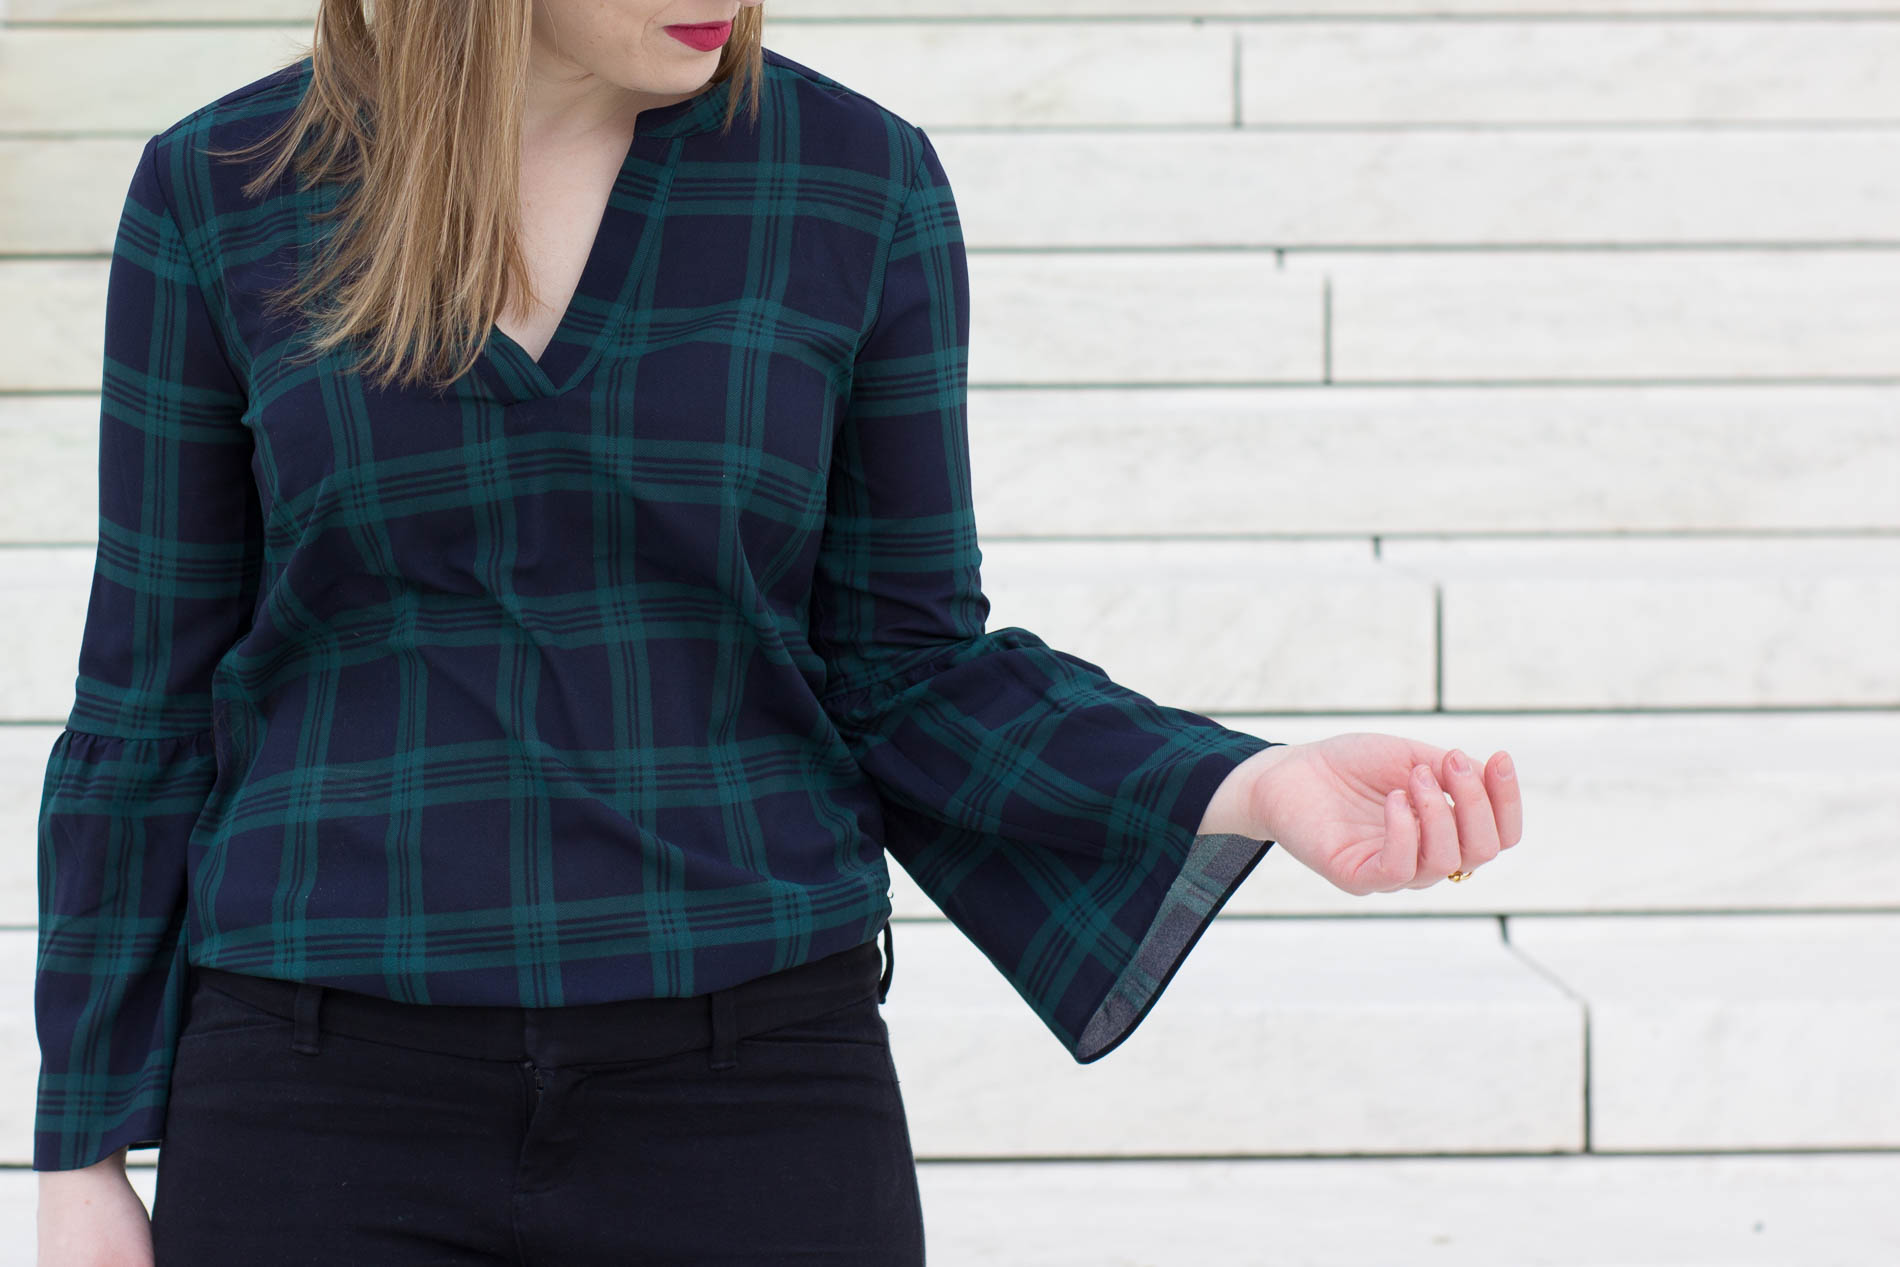 The Office Holiday Party   Something Good, @danaerinw, j.crew factory bell sleeve top, plaid top